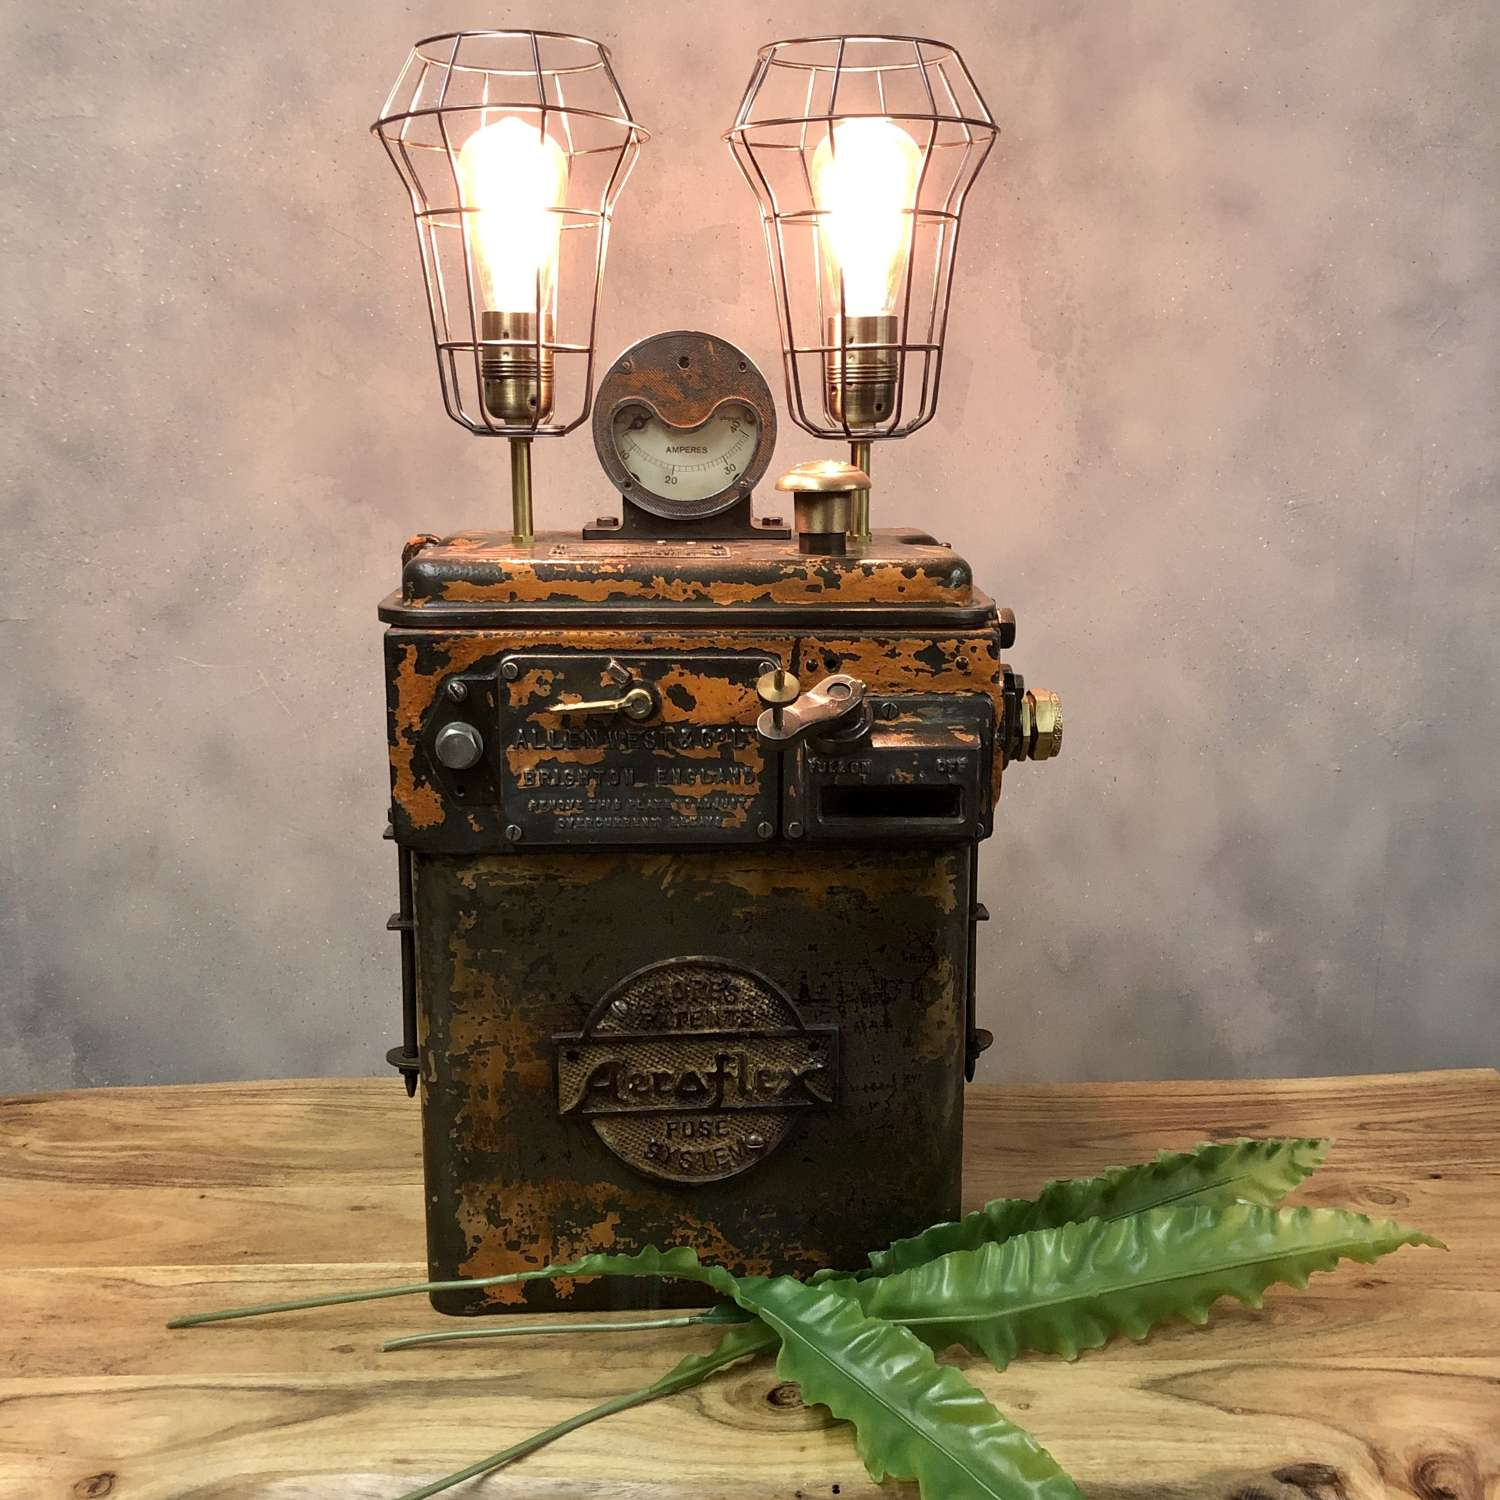 Converted switch gear industrial table lamp